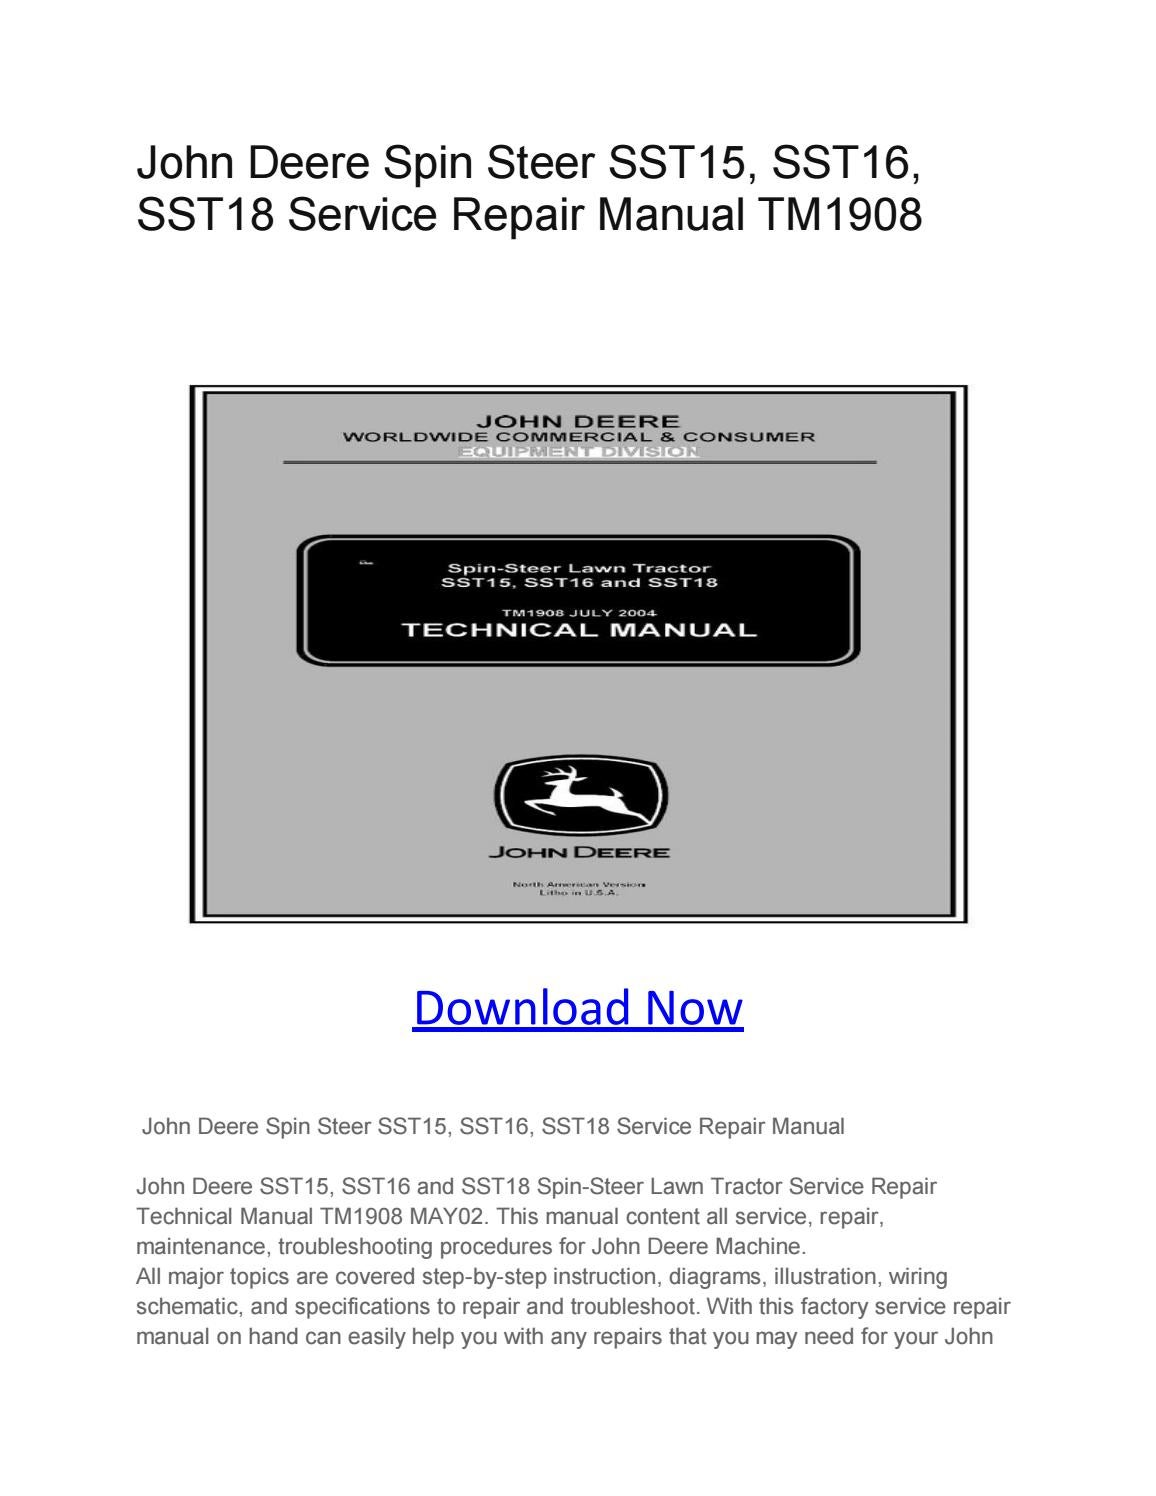 hight resolution of john deere spin steer sst15 sst16 sst18 service repair manual tm1908 by larry sprouse issuu